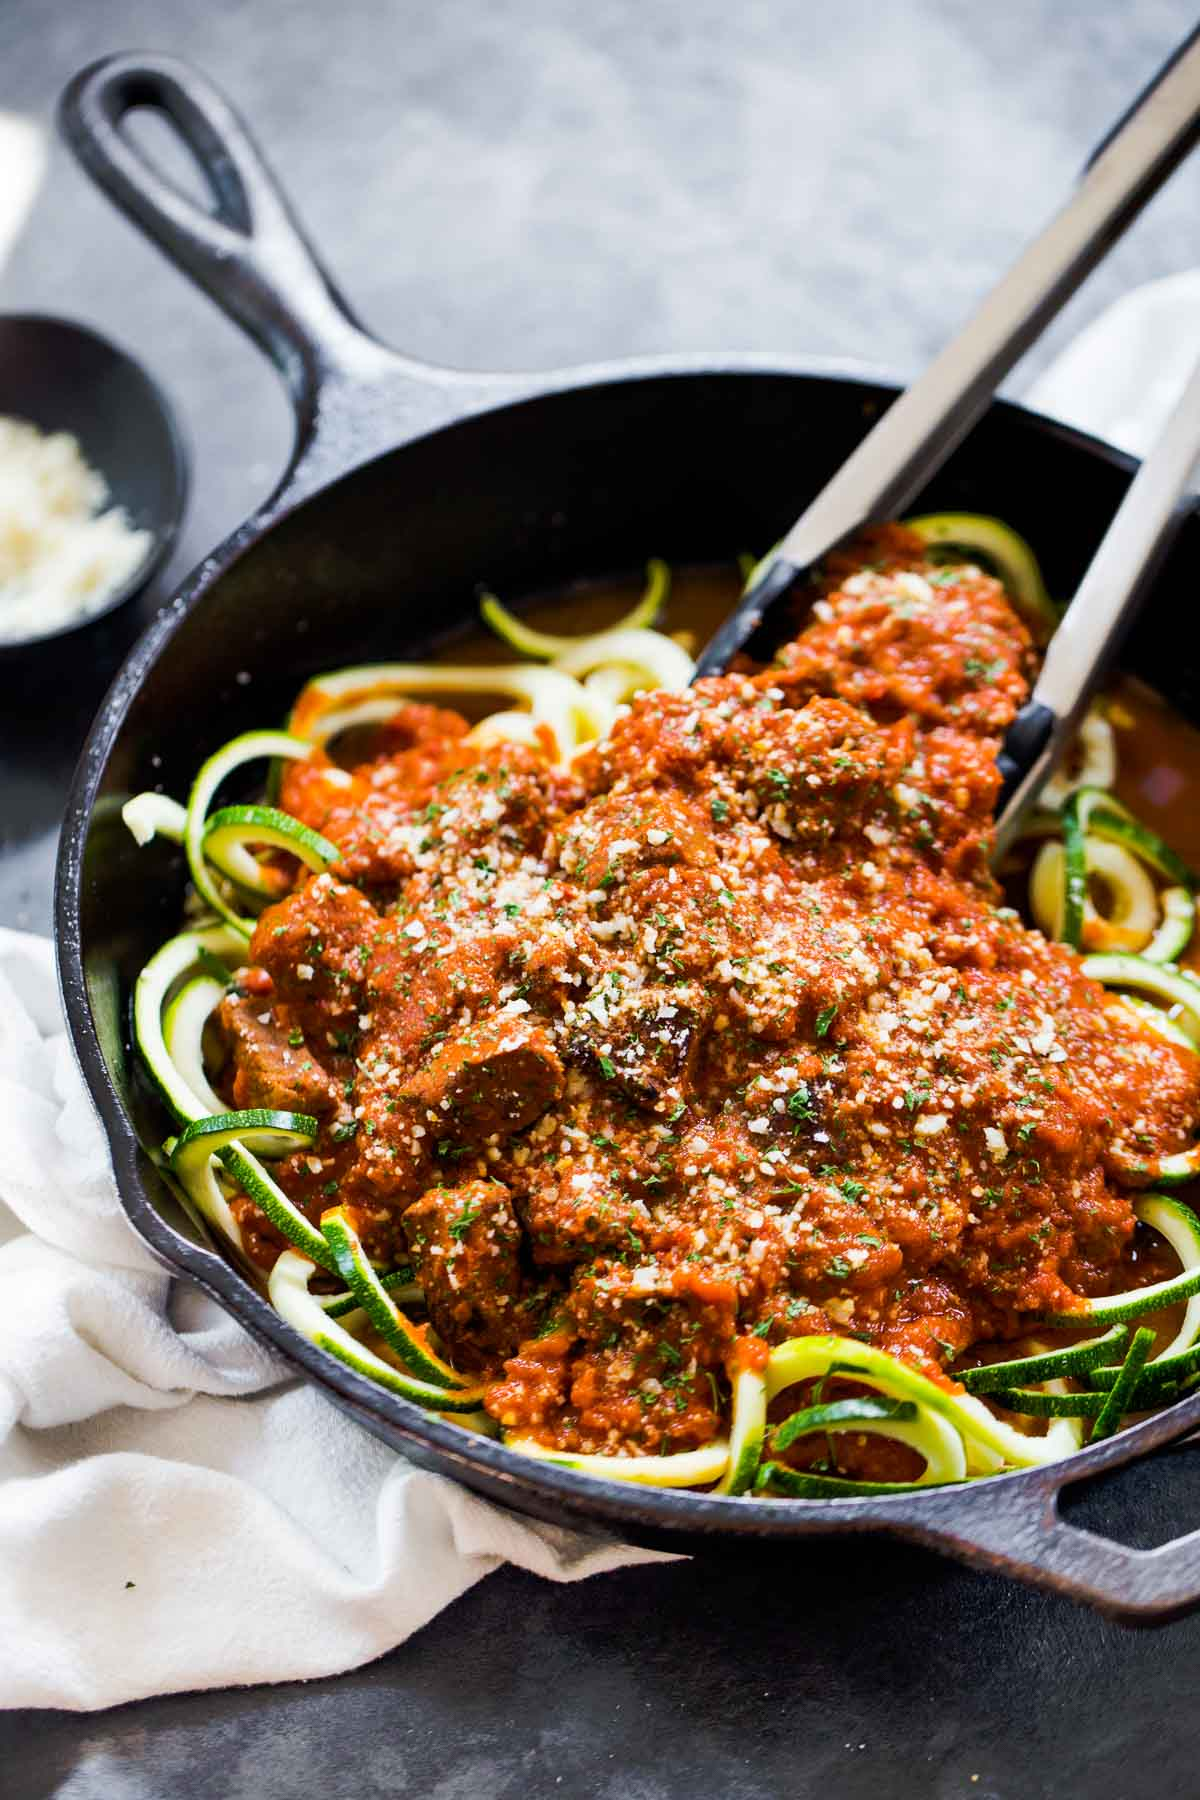 Only 4 ingredients and 20 minutes to make this Creamy Vodka Steak Pasta on zucchini noodles! So very simple and so delicious!   pinchofyum.com